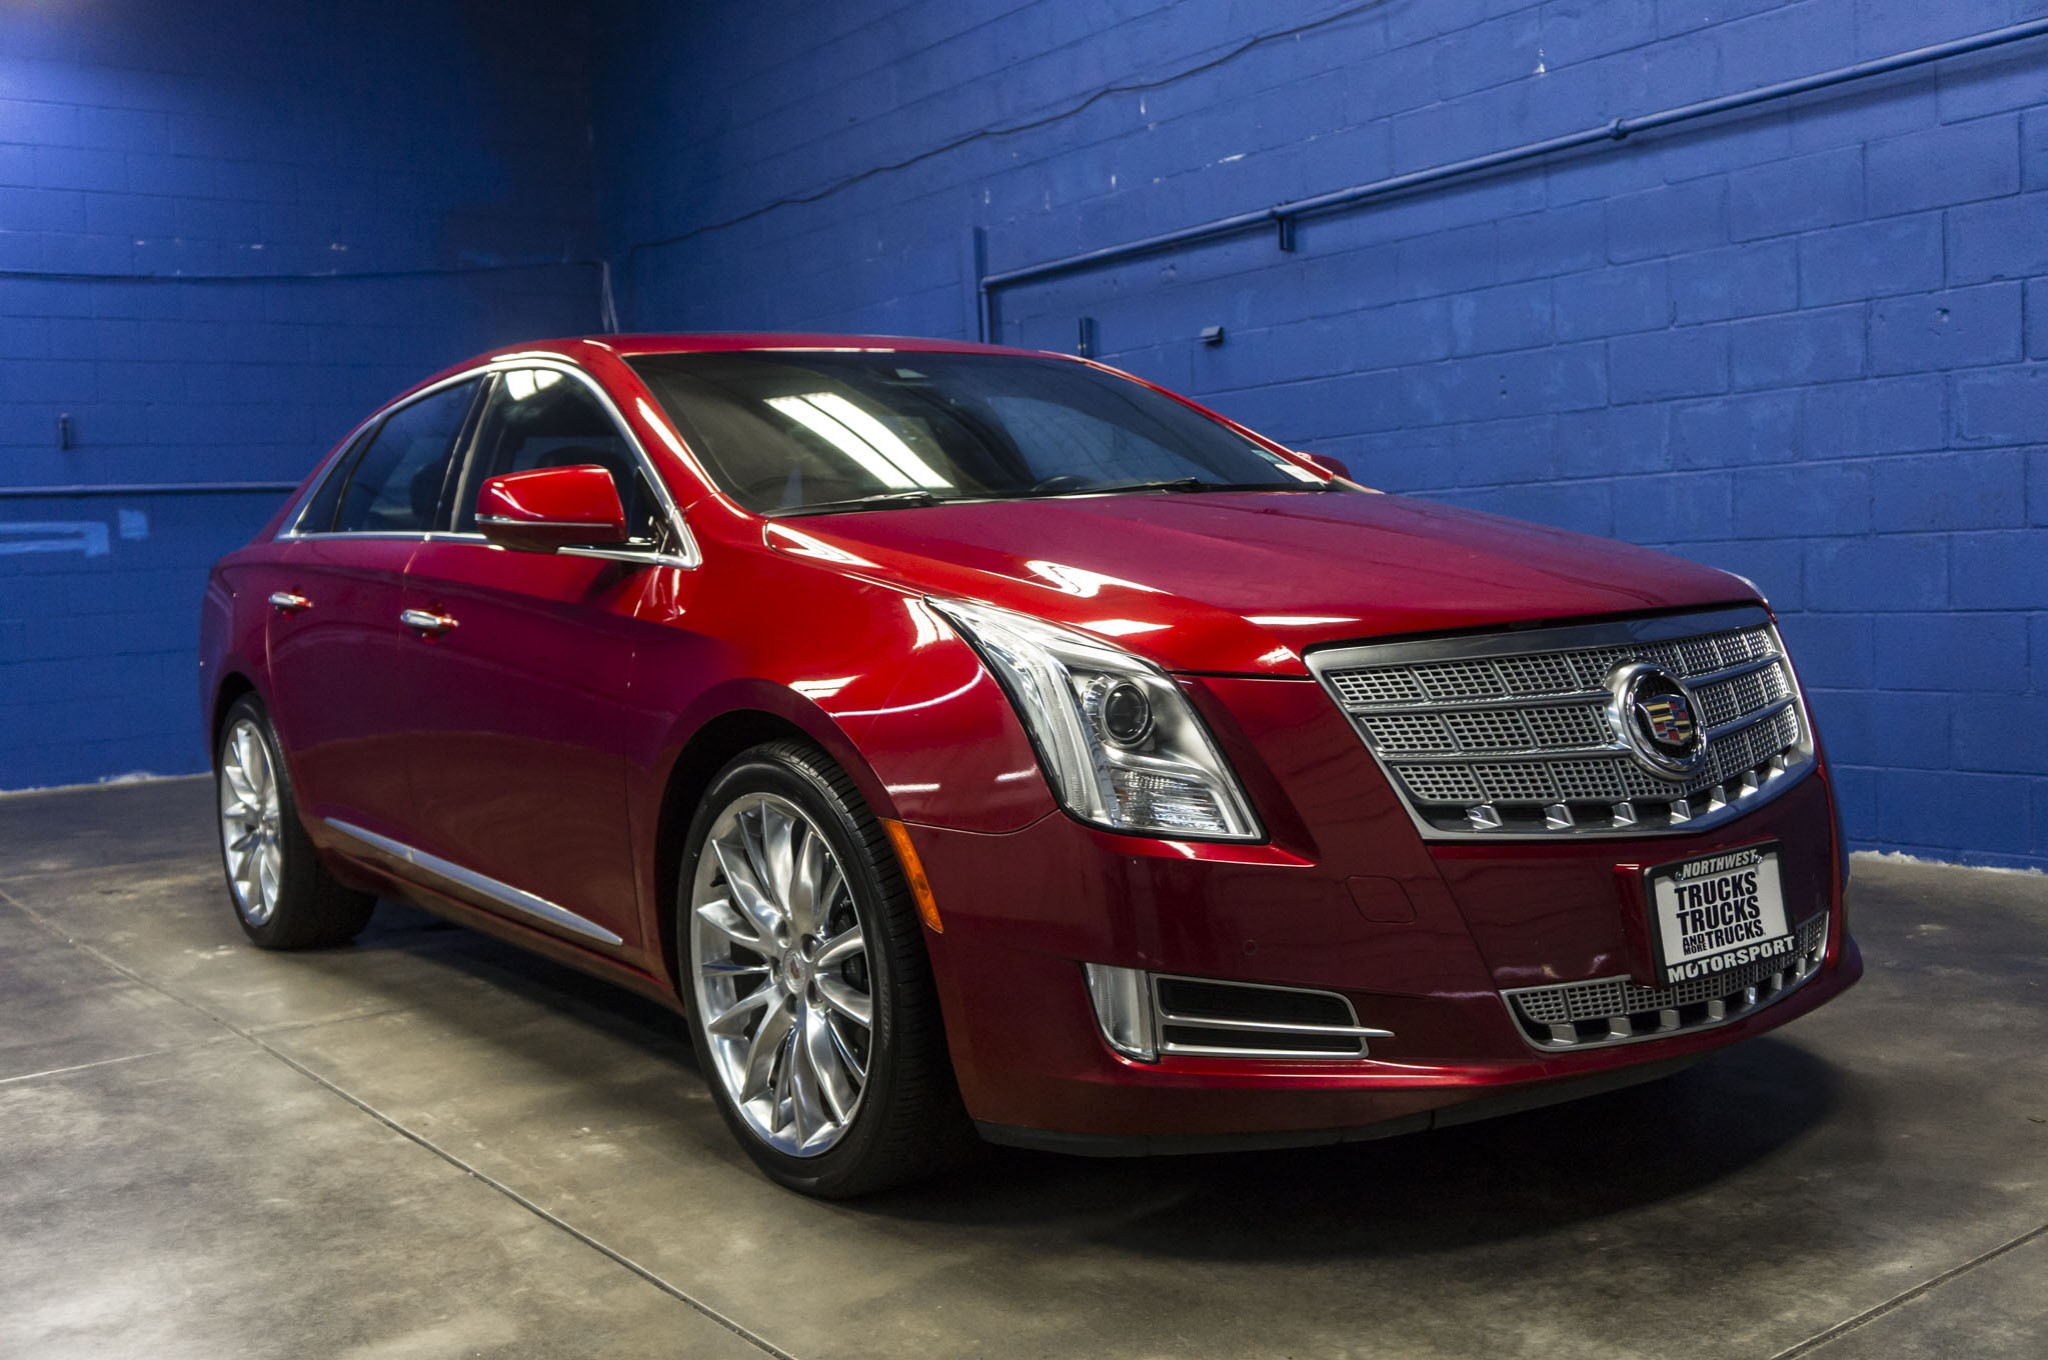 drive package for buy livery front xts cadillac sale wheel professional